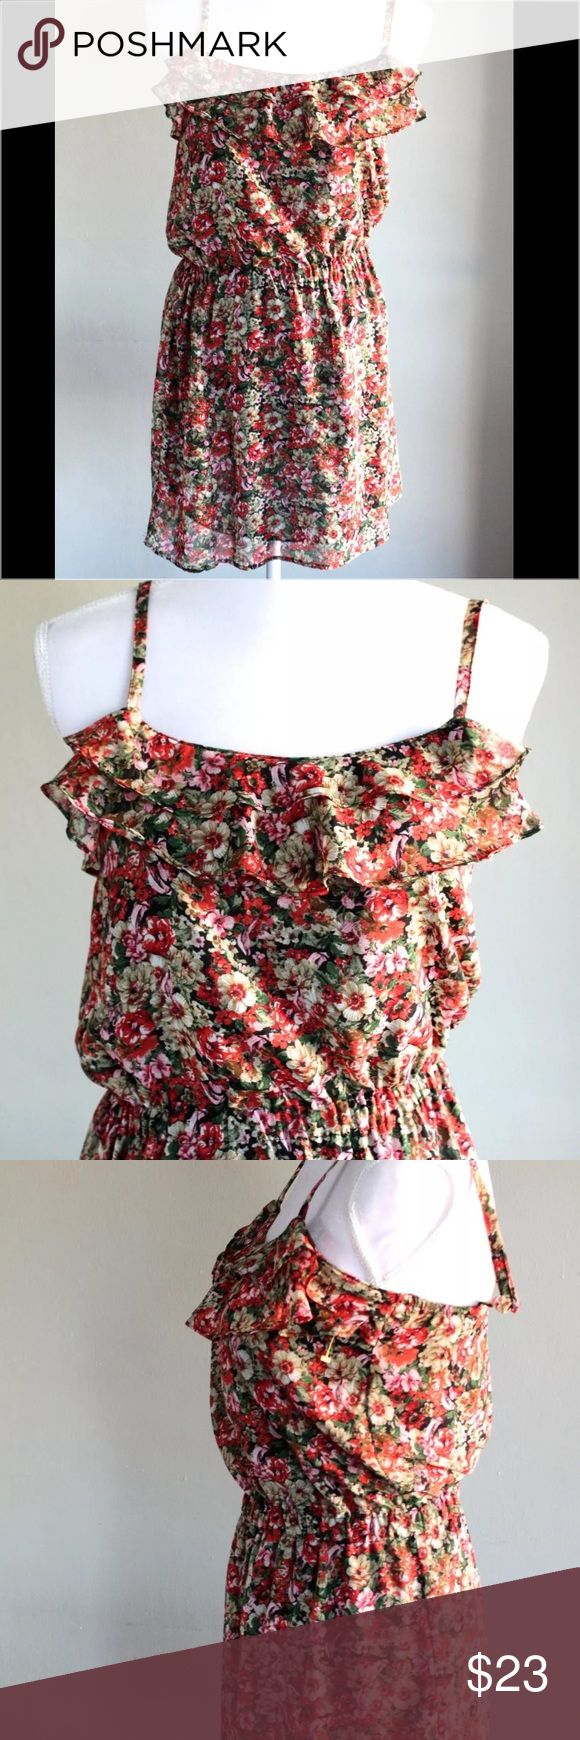 MNG By Mango Sleeveless Floral Dress Size 4 MNG By Mango collection dress. Beautiful floral flower design in colors of red, pink, beige and green. Size 4. New with tags attached Mango Dresses Midi